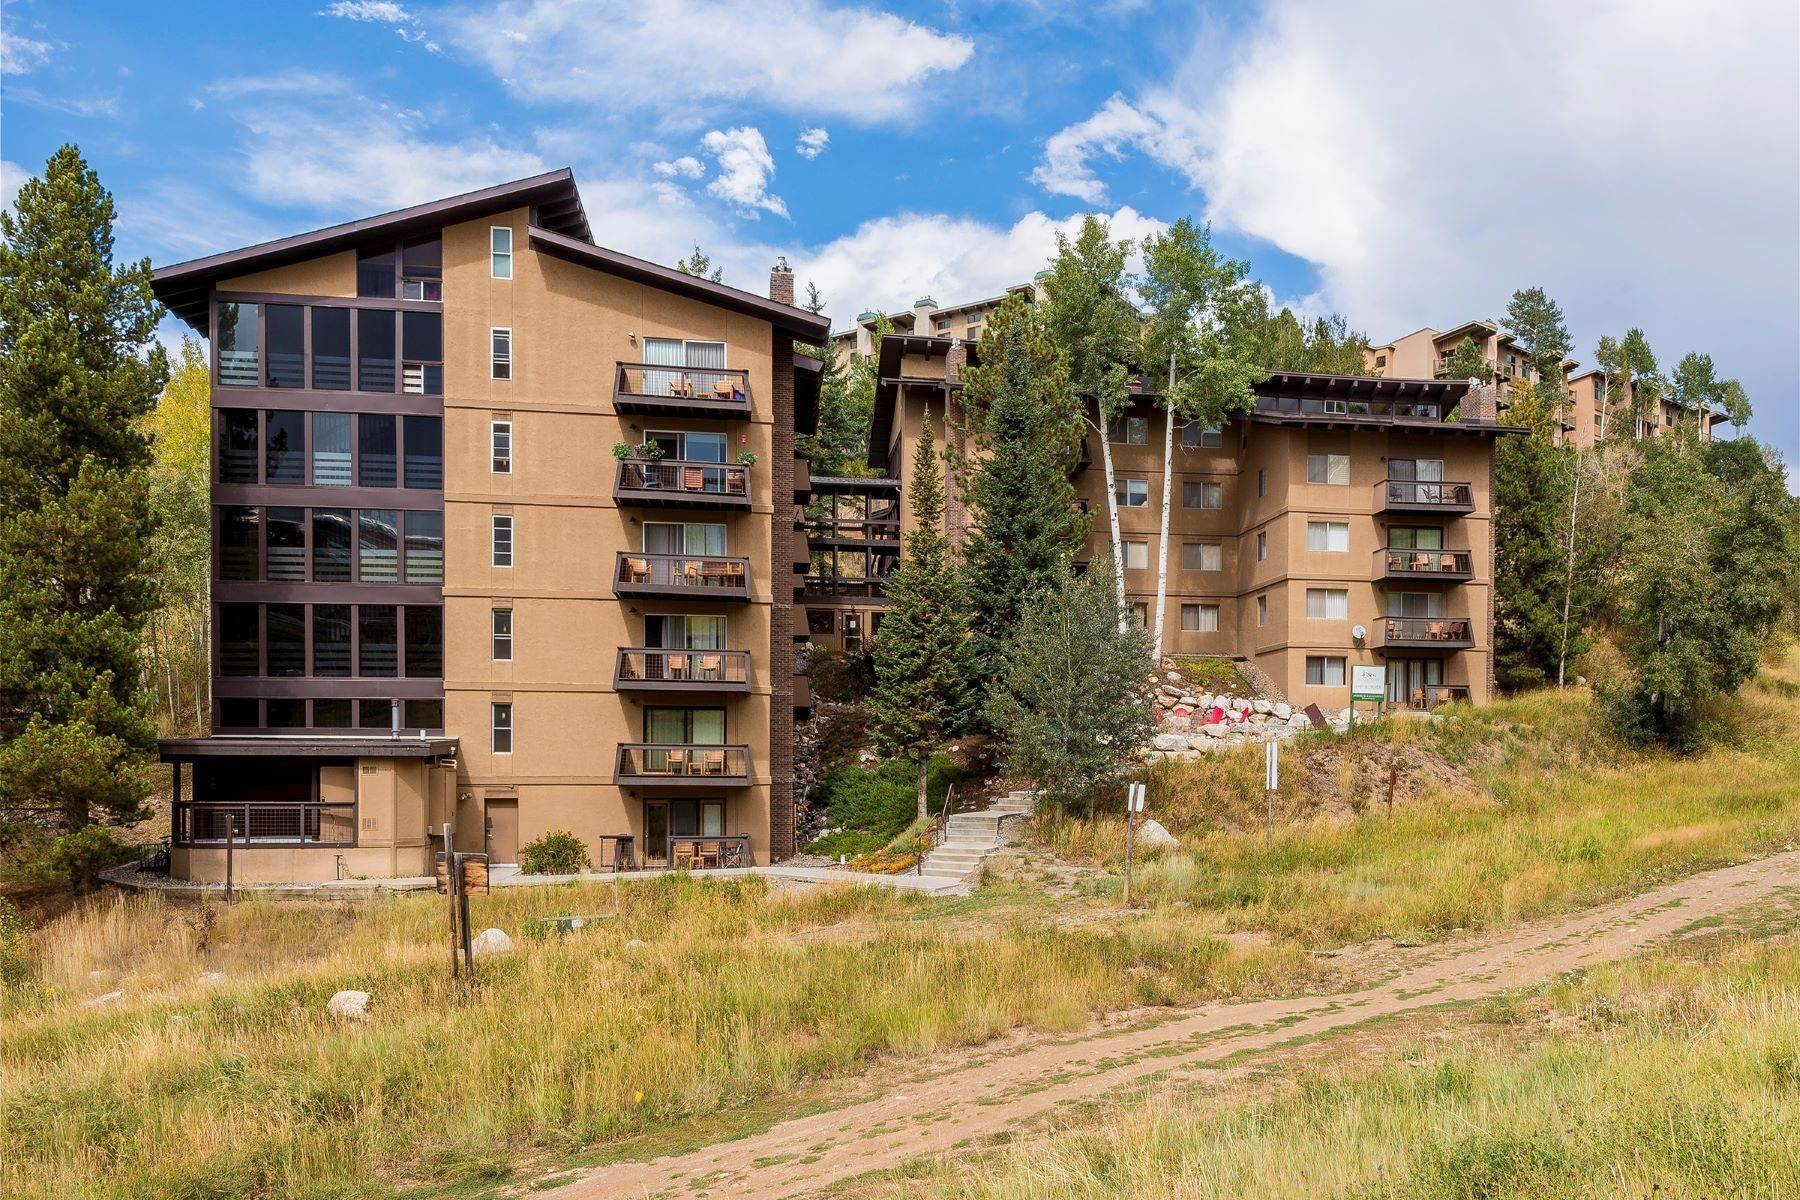 Condominiums for Sale at Ski In/Out at Storm Meadows 2275 Storm Meadows Dr., Unit 32 Steamboat Springs, Colorado 80487 United States